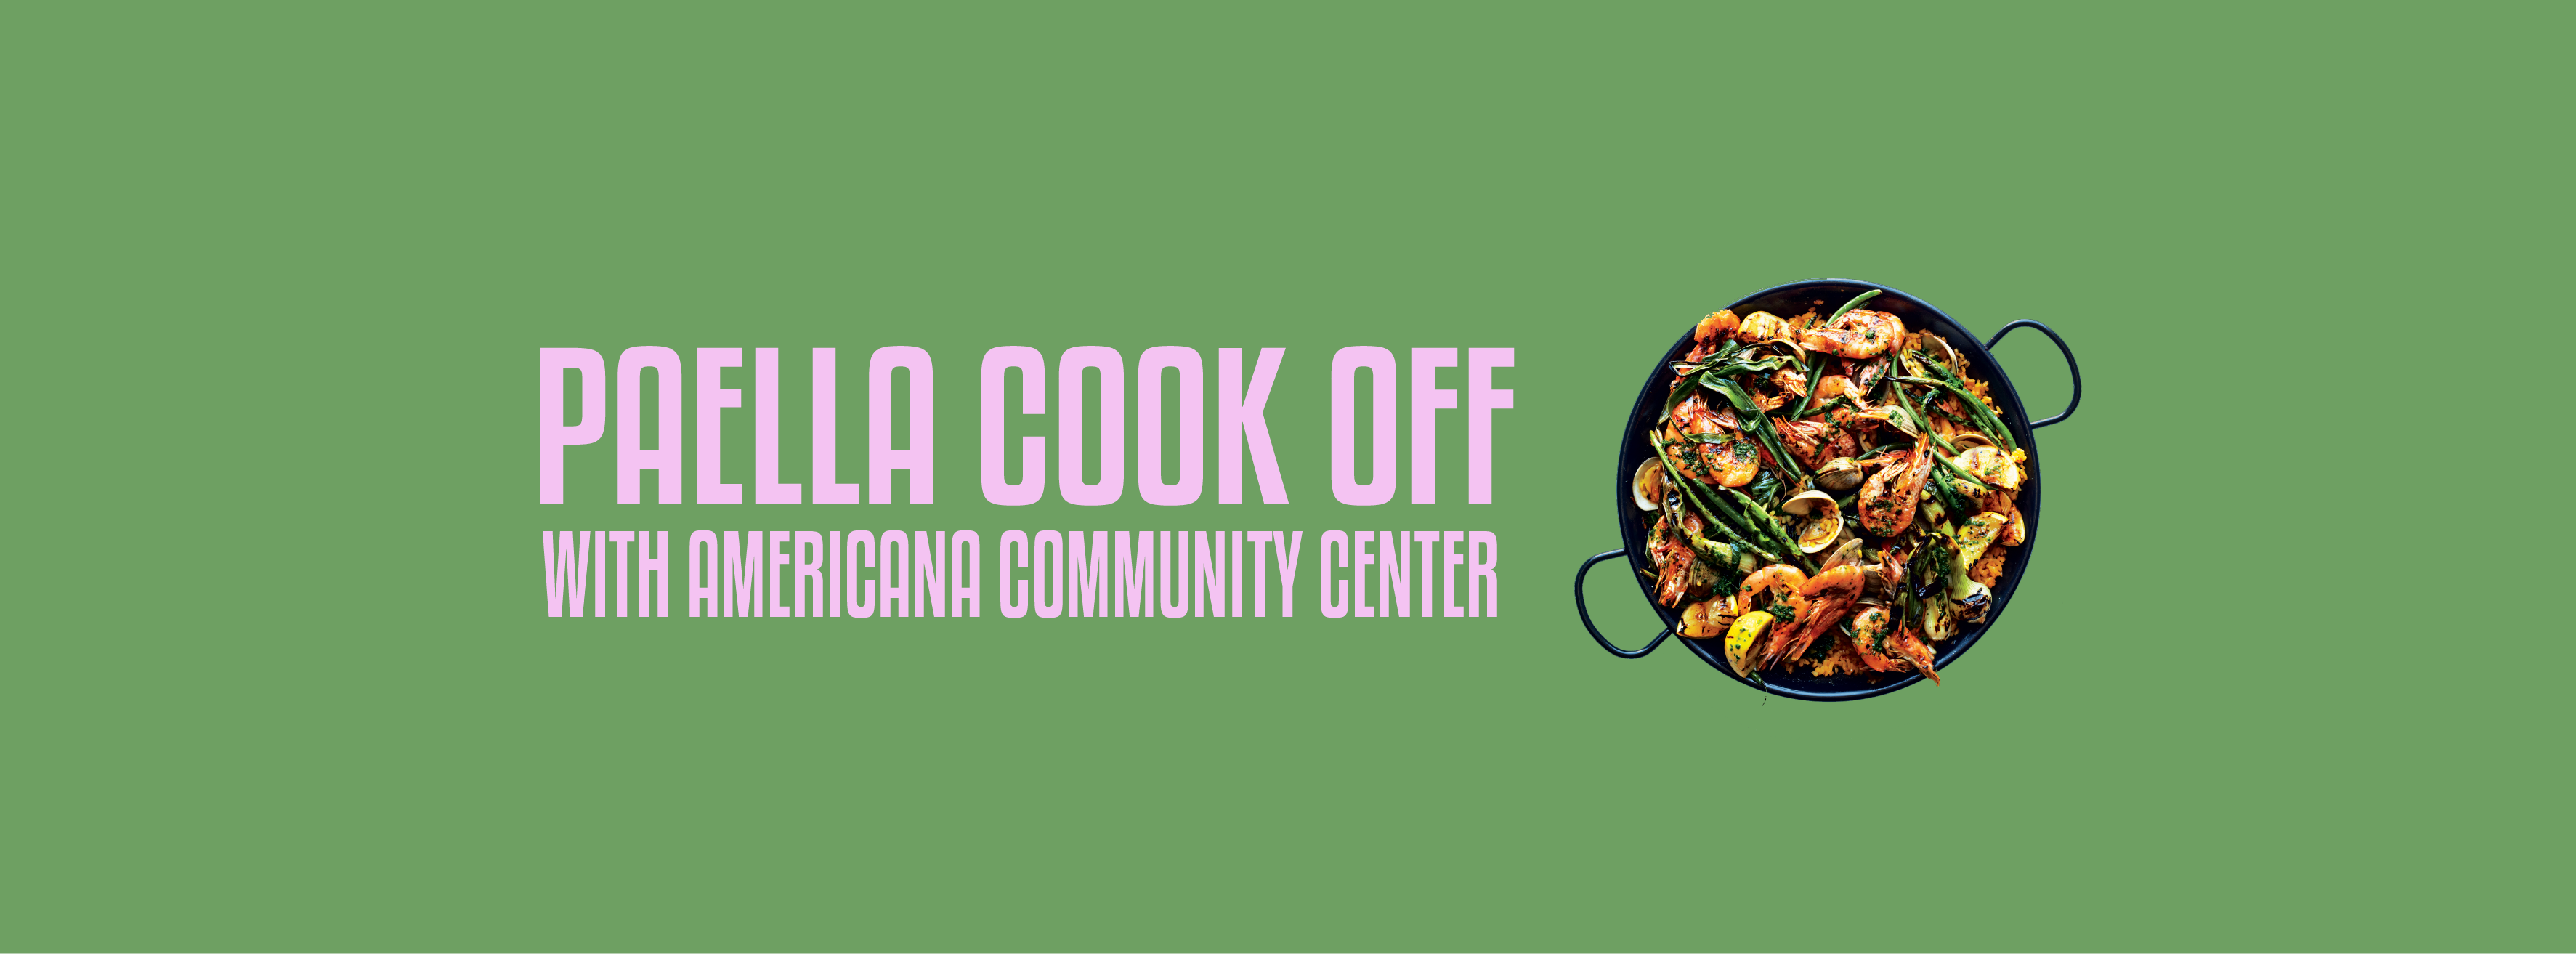 Paella Cook Off Image